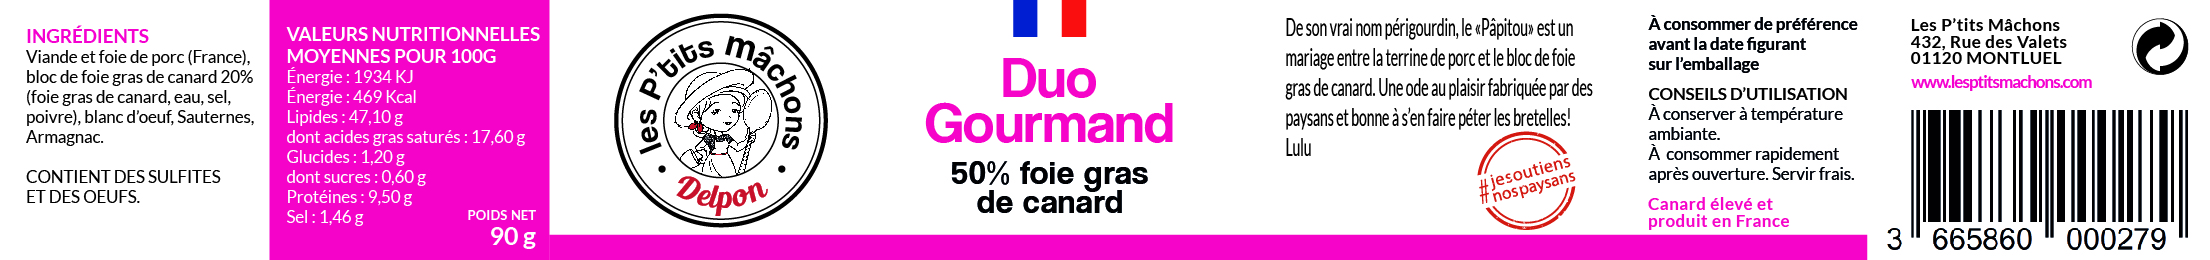 Duo Gourmand 90g